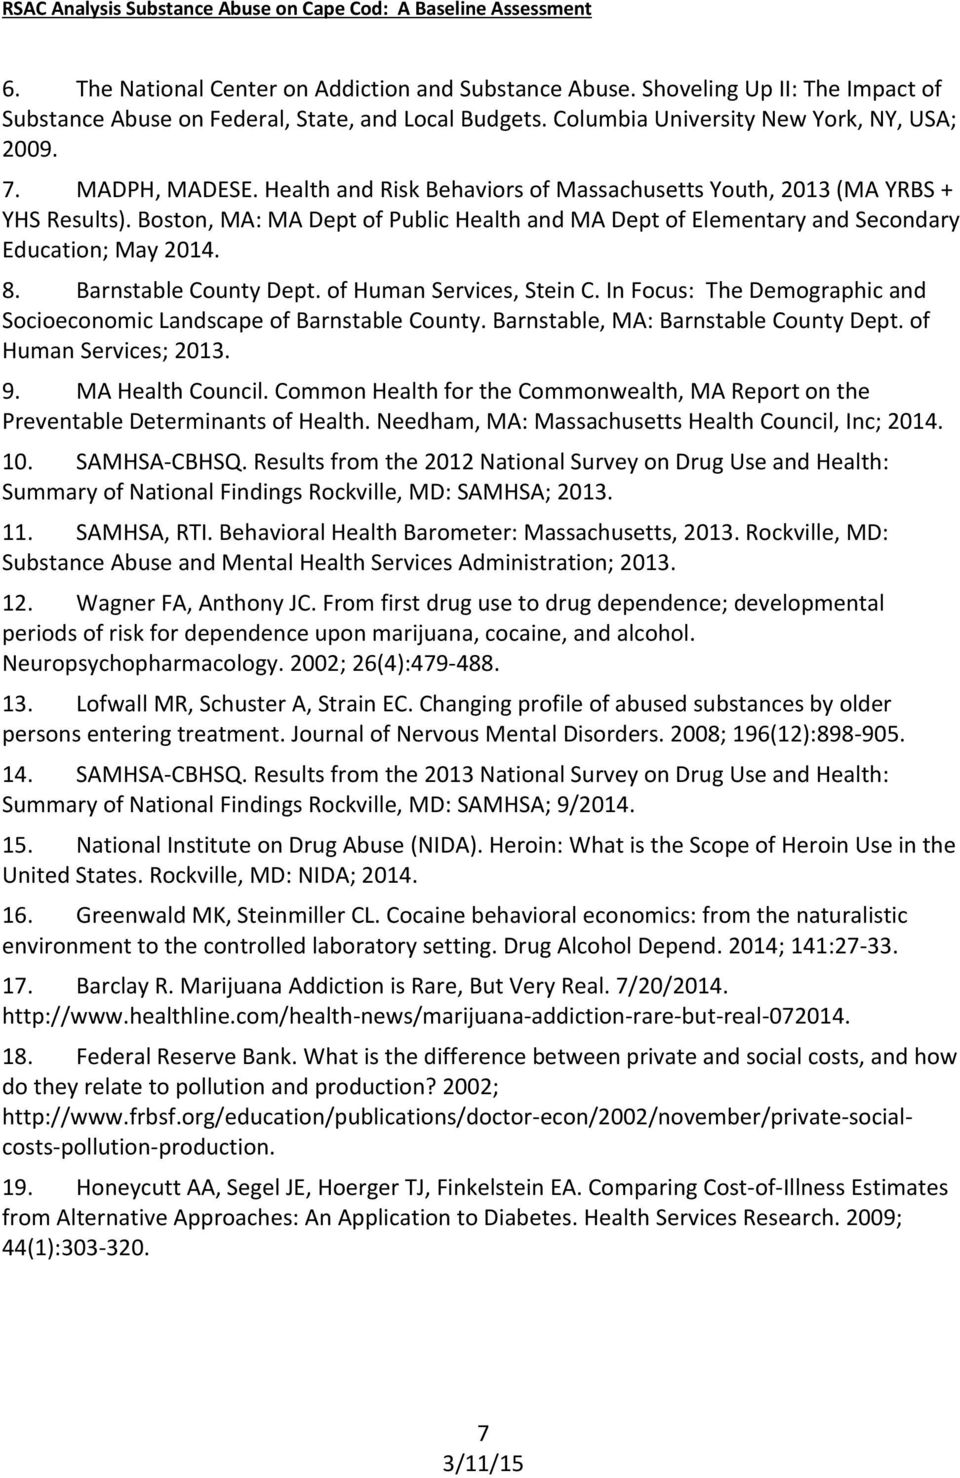 Barnstable County Dept. of Human Services, Stein C. In Focus: The Demographic and Socioeconomic Landscape of Barnstable County. Barnstable, MA: Barnstable County Dept. of Human Services; 2013. 9.